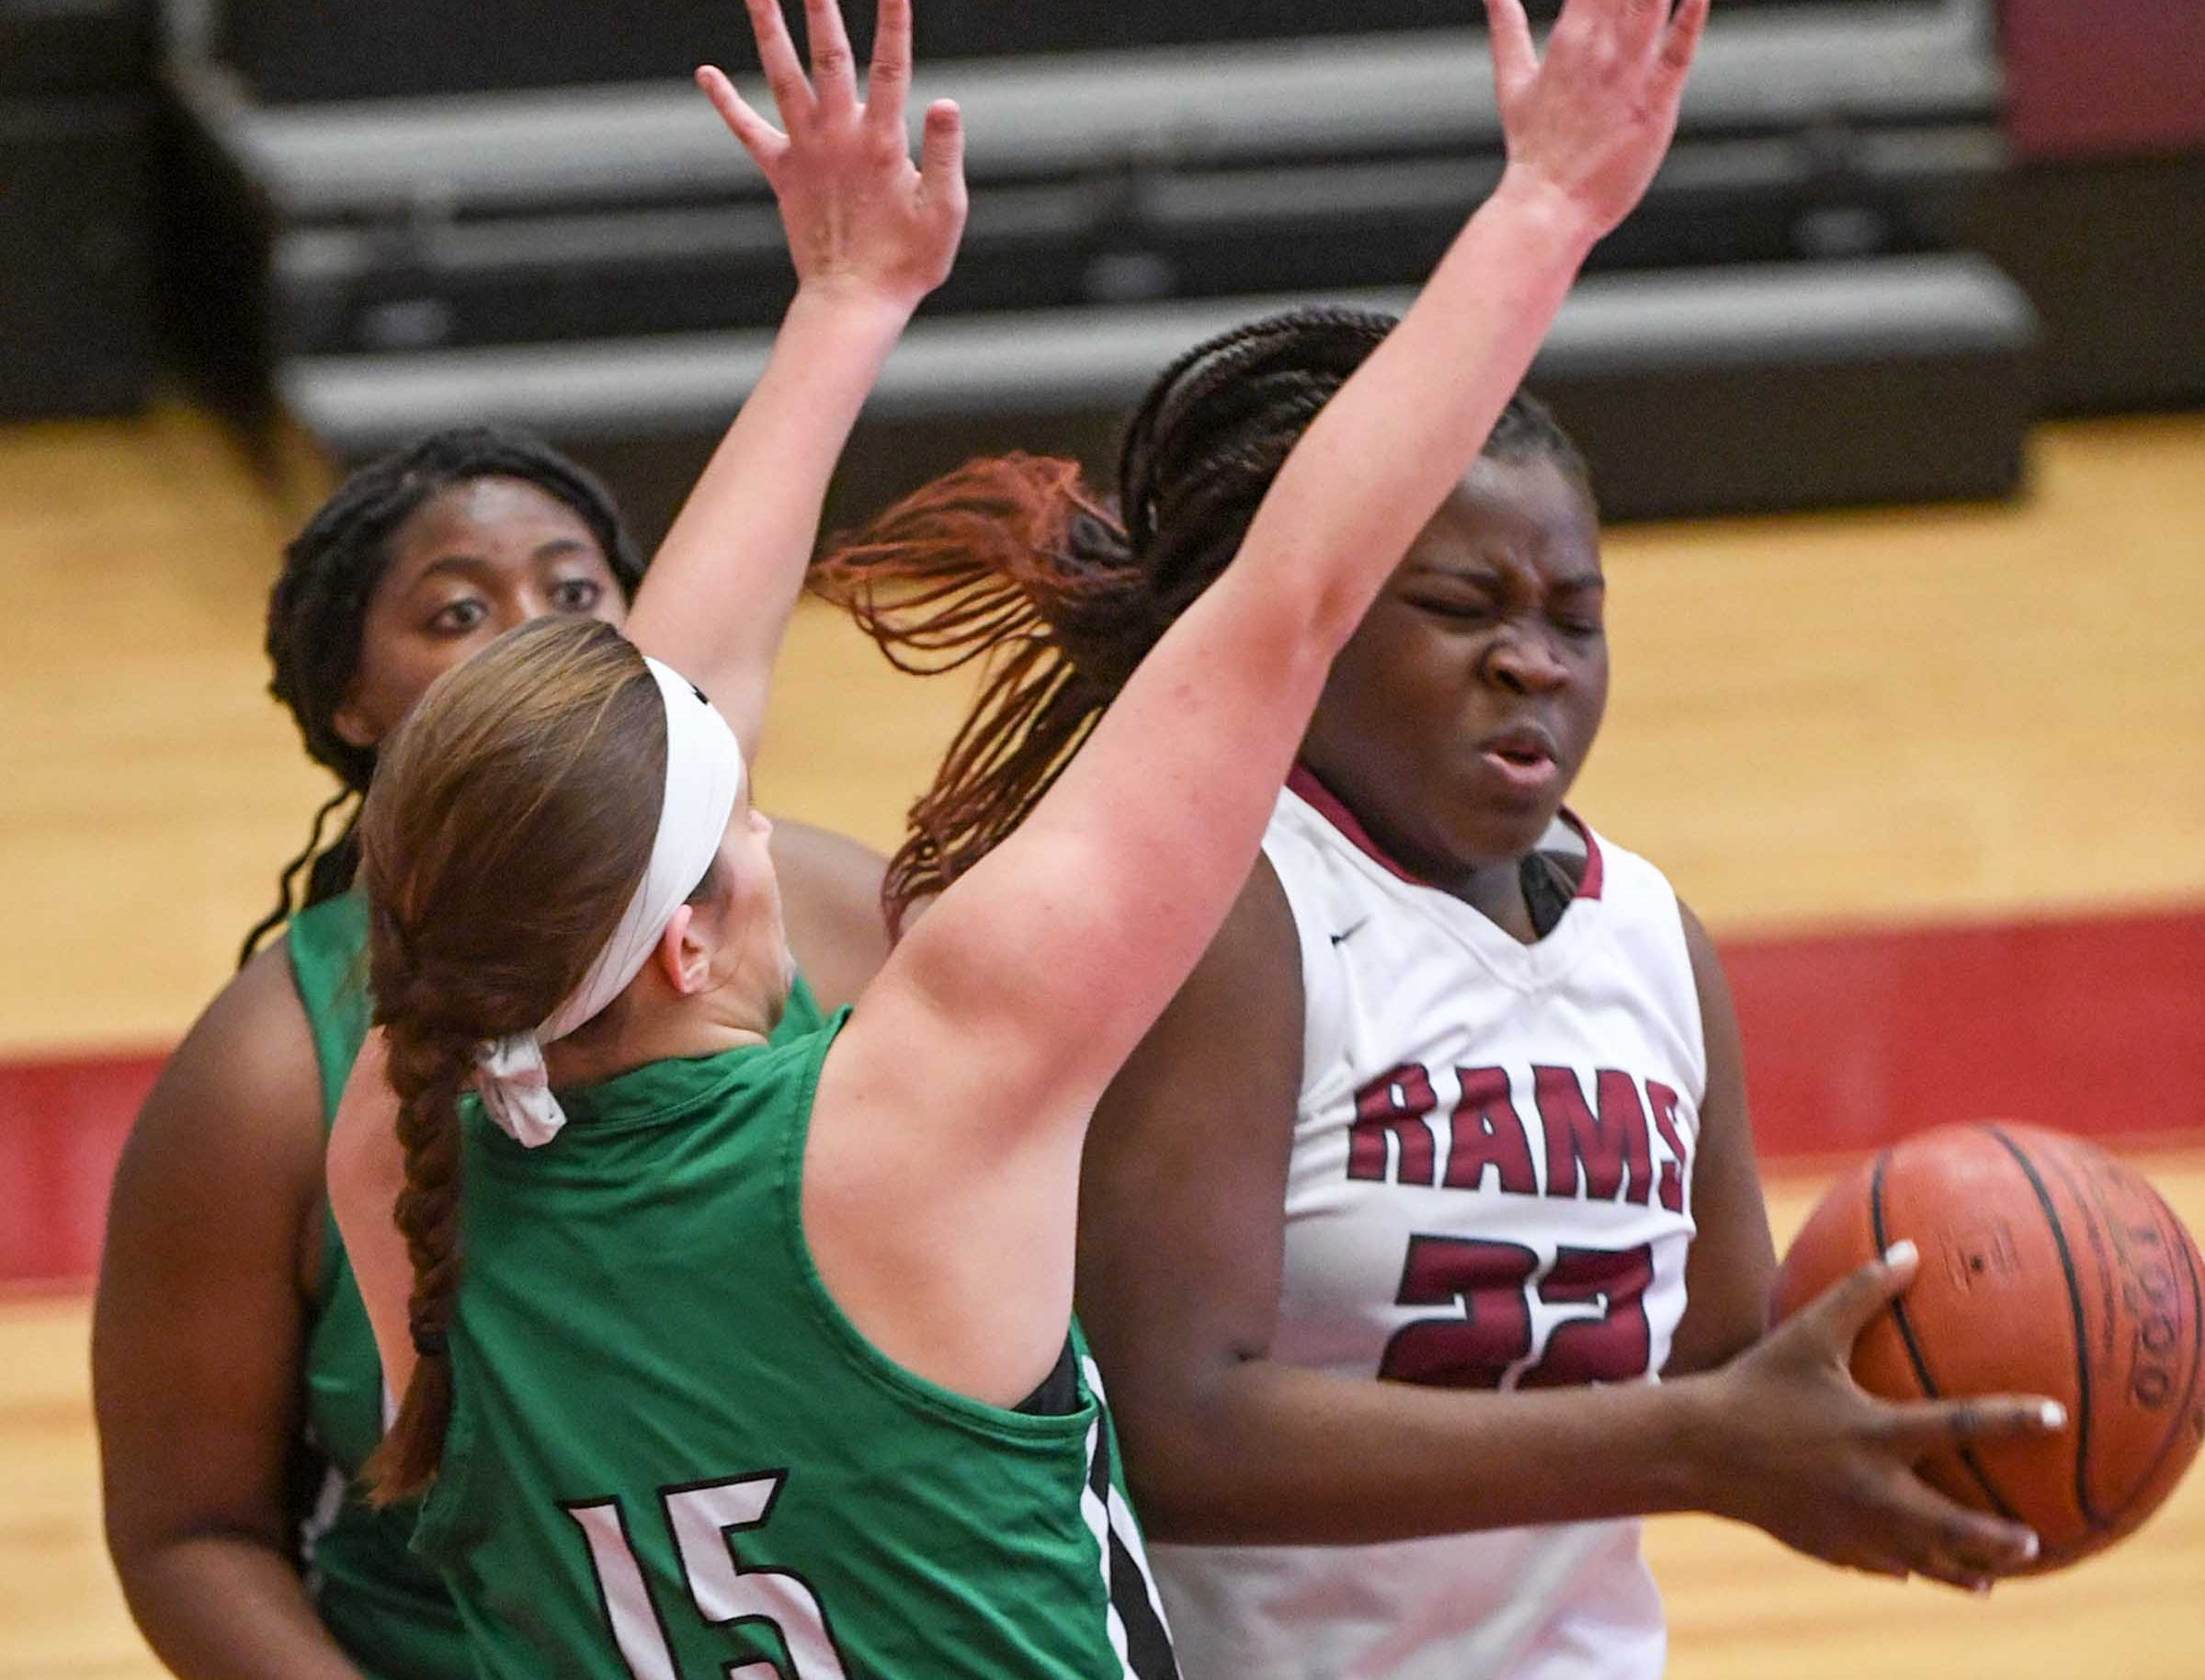 Easley freshman Kylie Nabors(15) pressures Westside sophomore Chyna Dixon(22) during the fourth quarter at Westside High School in Anderson on Friday.